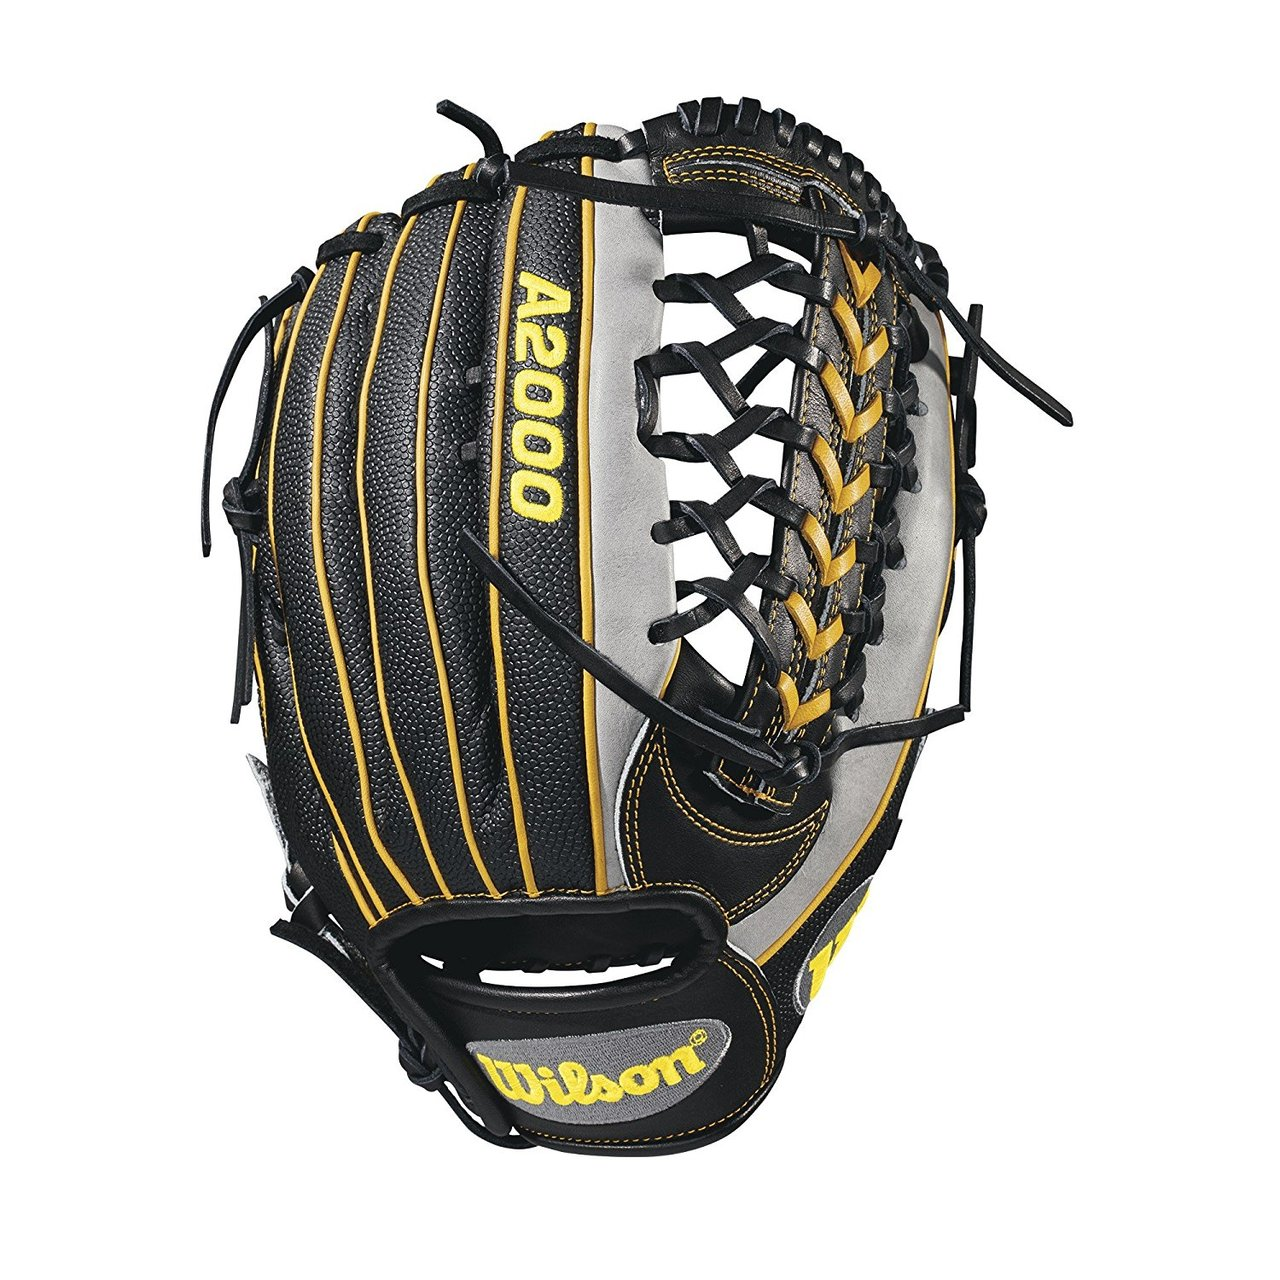 wilson-2018-a2000-pf92-outfield-baseball-glove-right-hand-throw-12-25 WTA20RB18PF92-RightHandThrow Wilson 887768614591 <div>The all-new A2000® PF92 combines the trusted features of one of